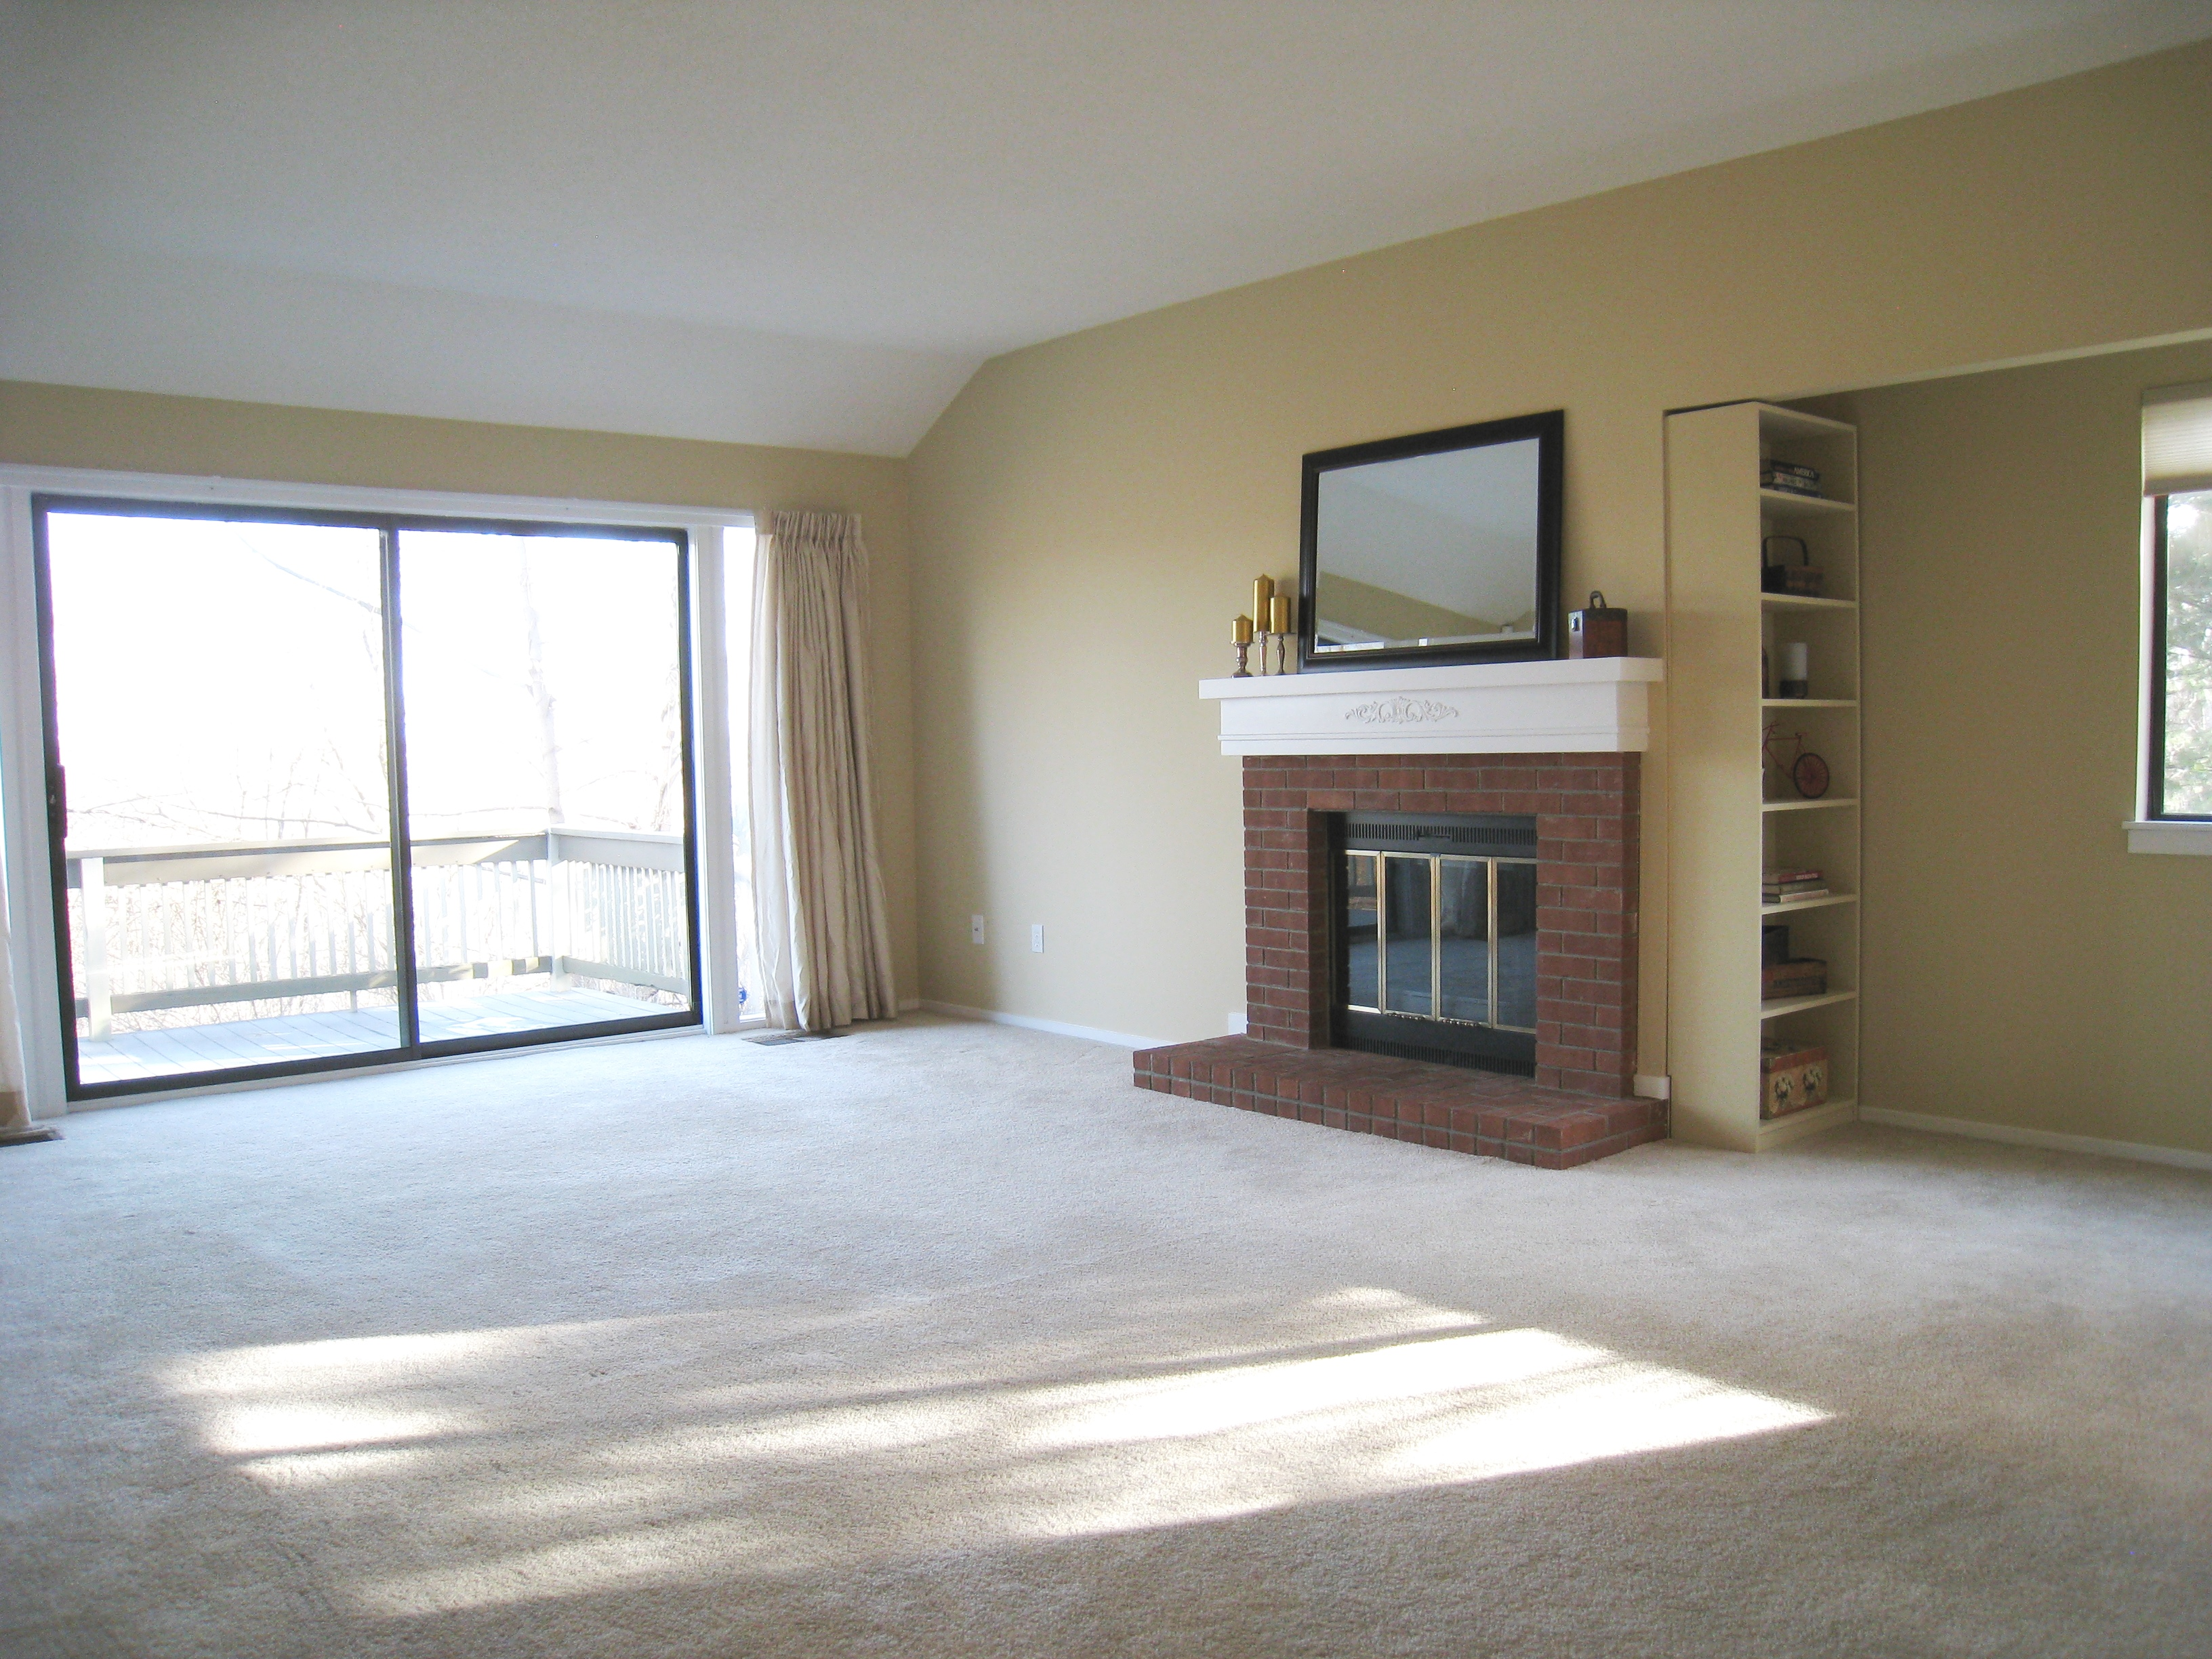 Living Room Staging Home Staging From Rehab To Rental Atwell Staged Home